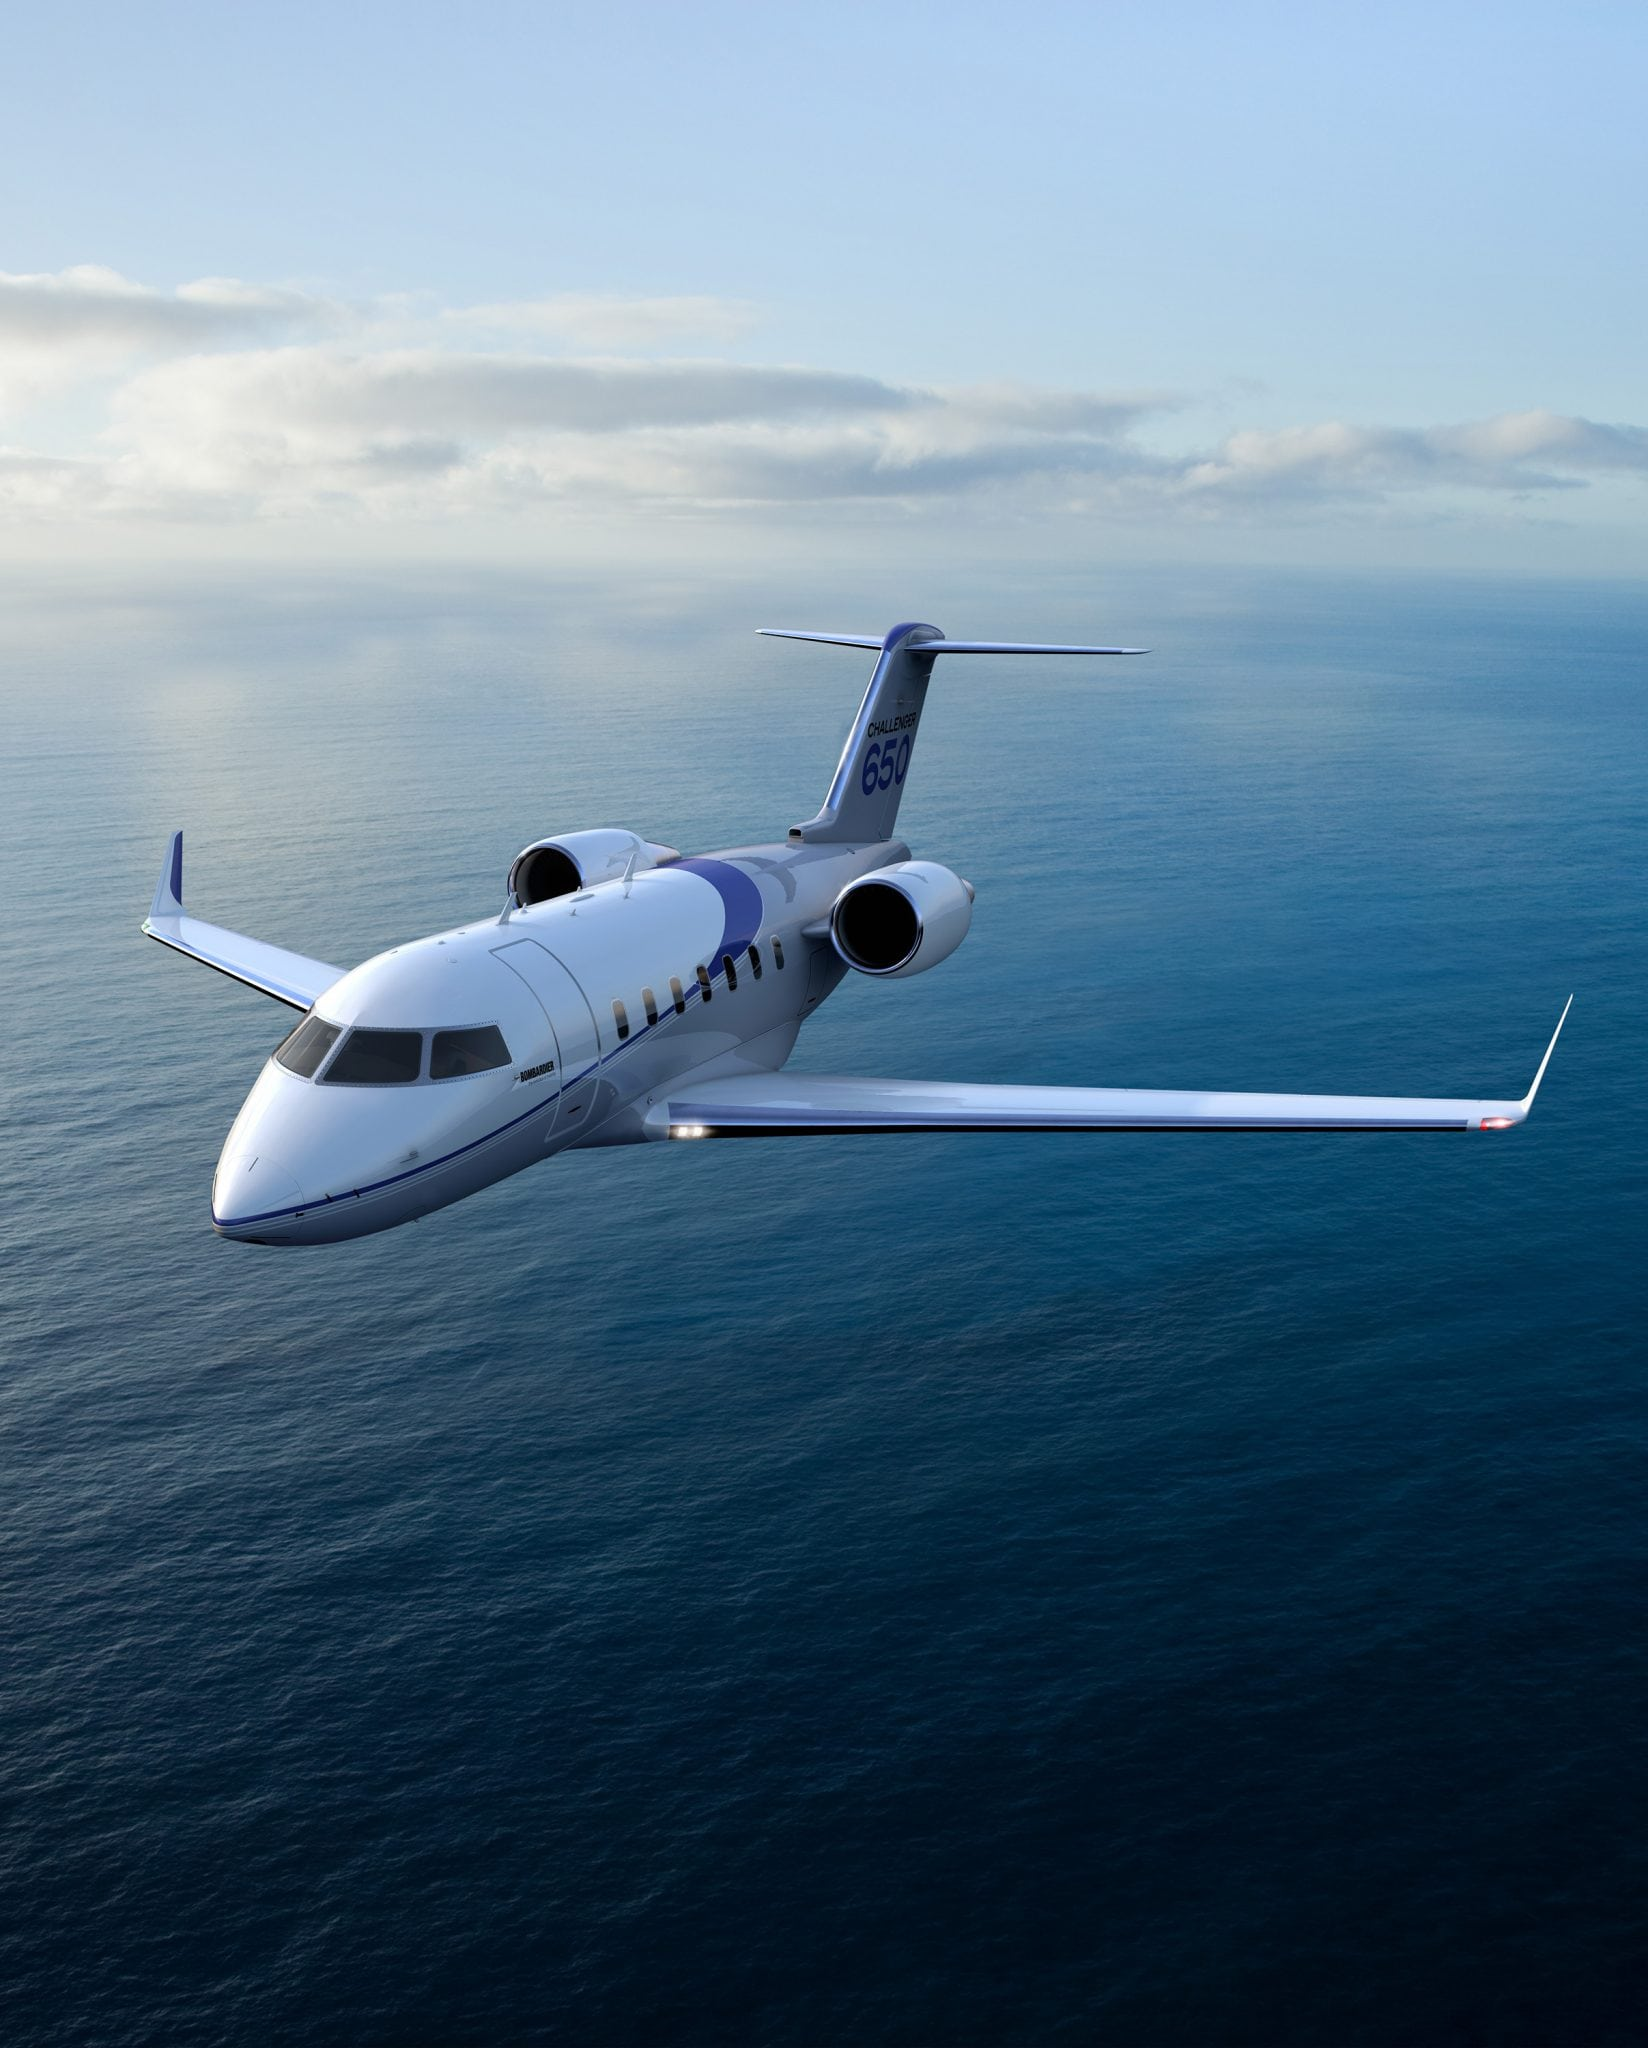 Bombardier's Challenger 650 aircraft